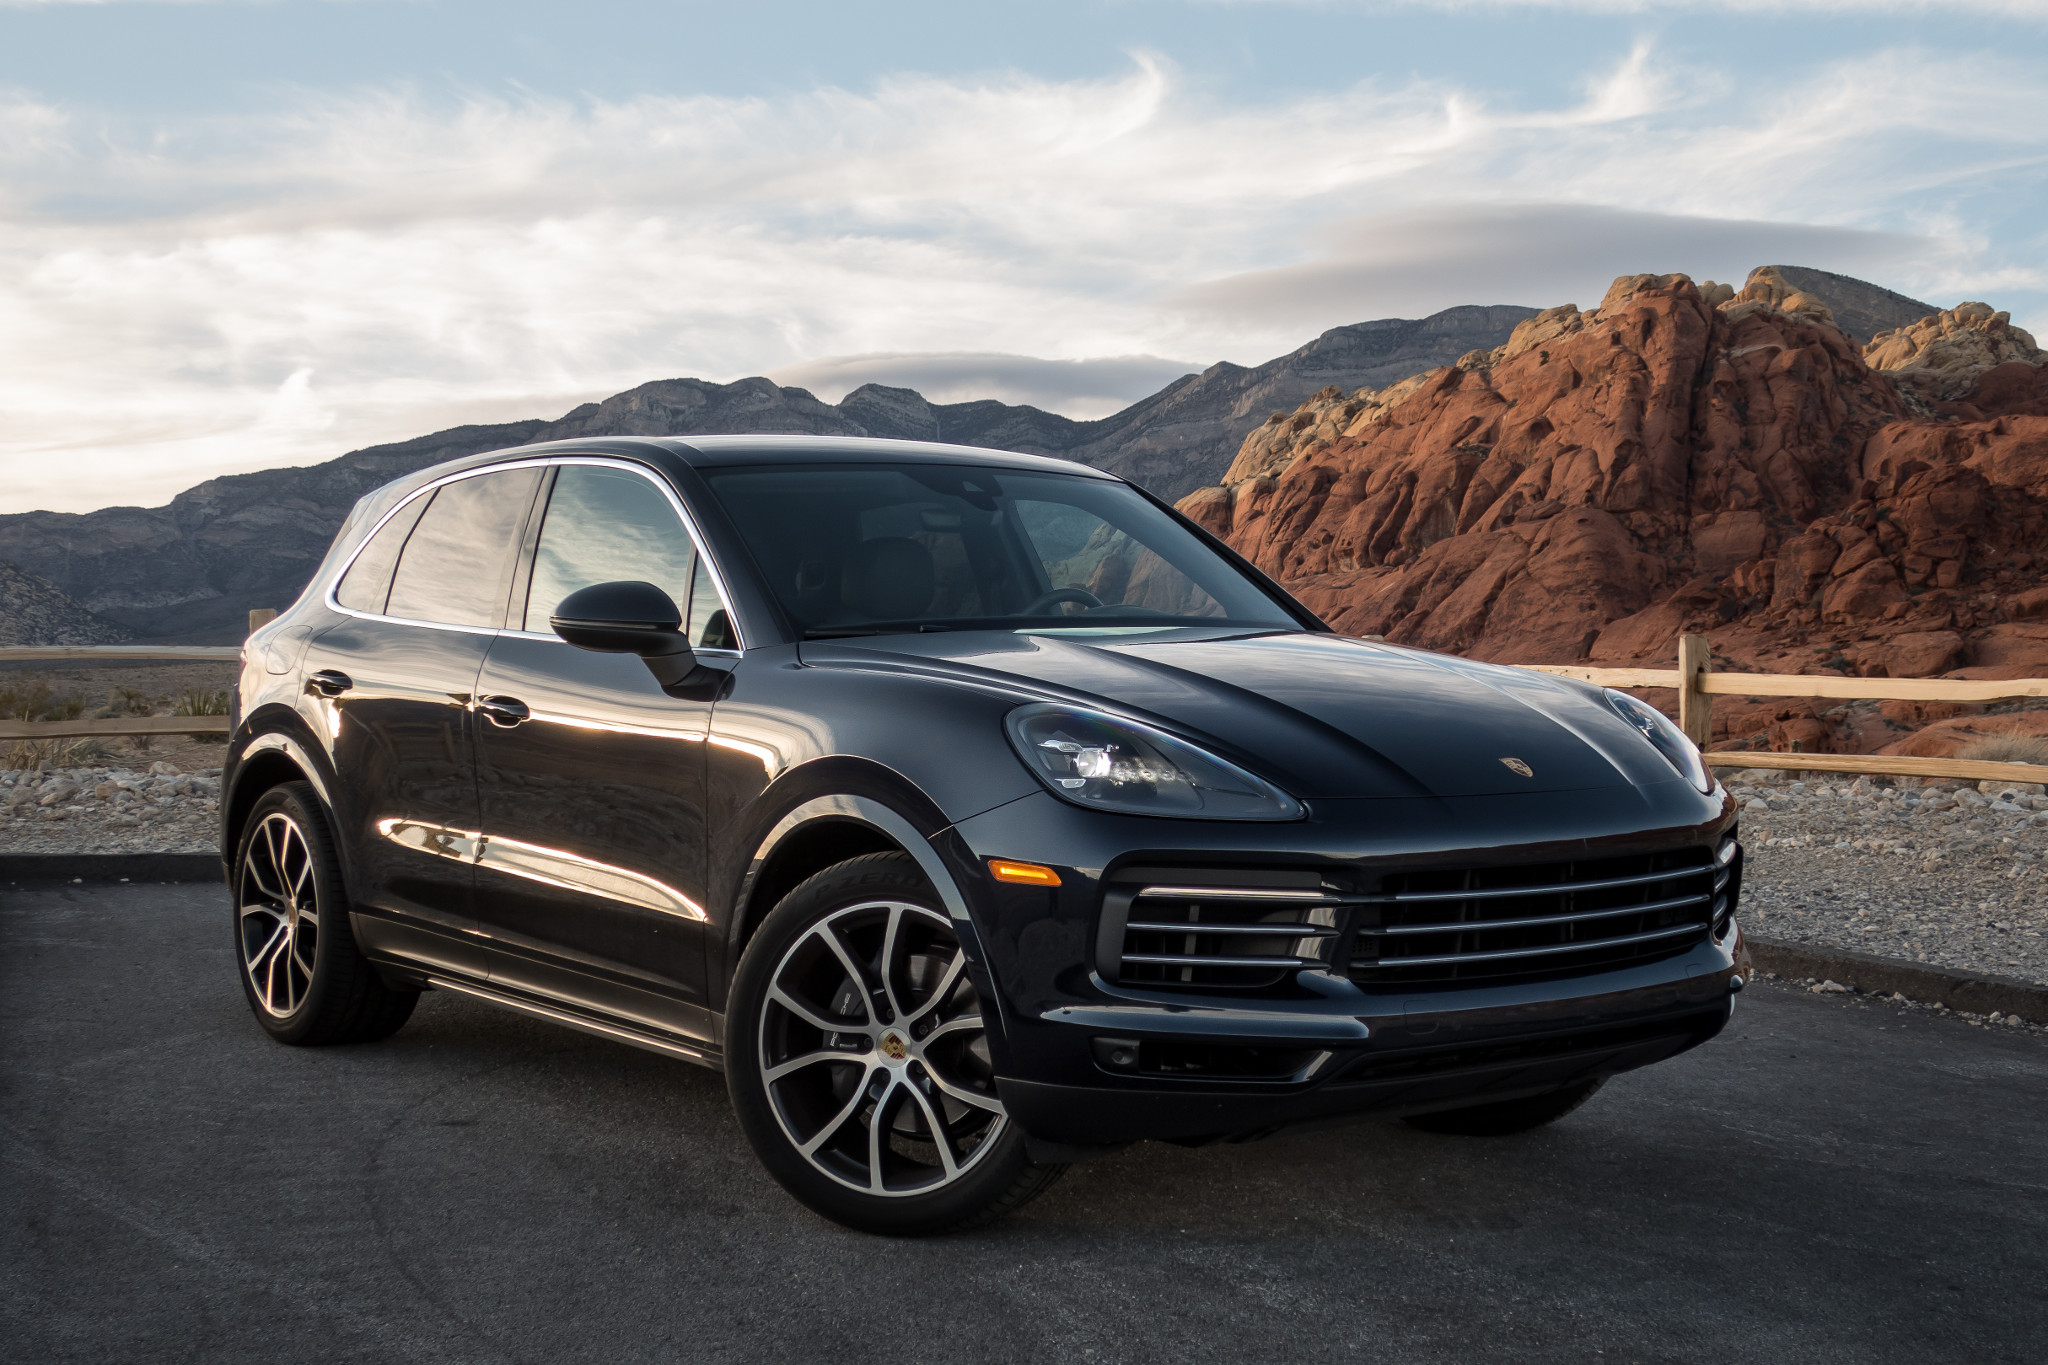 2019 Porsche Cayenne Review: Give and Take